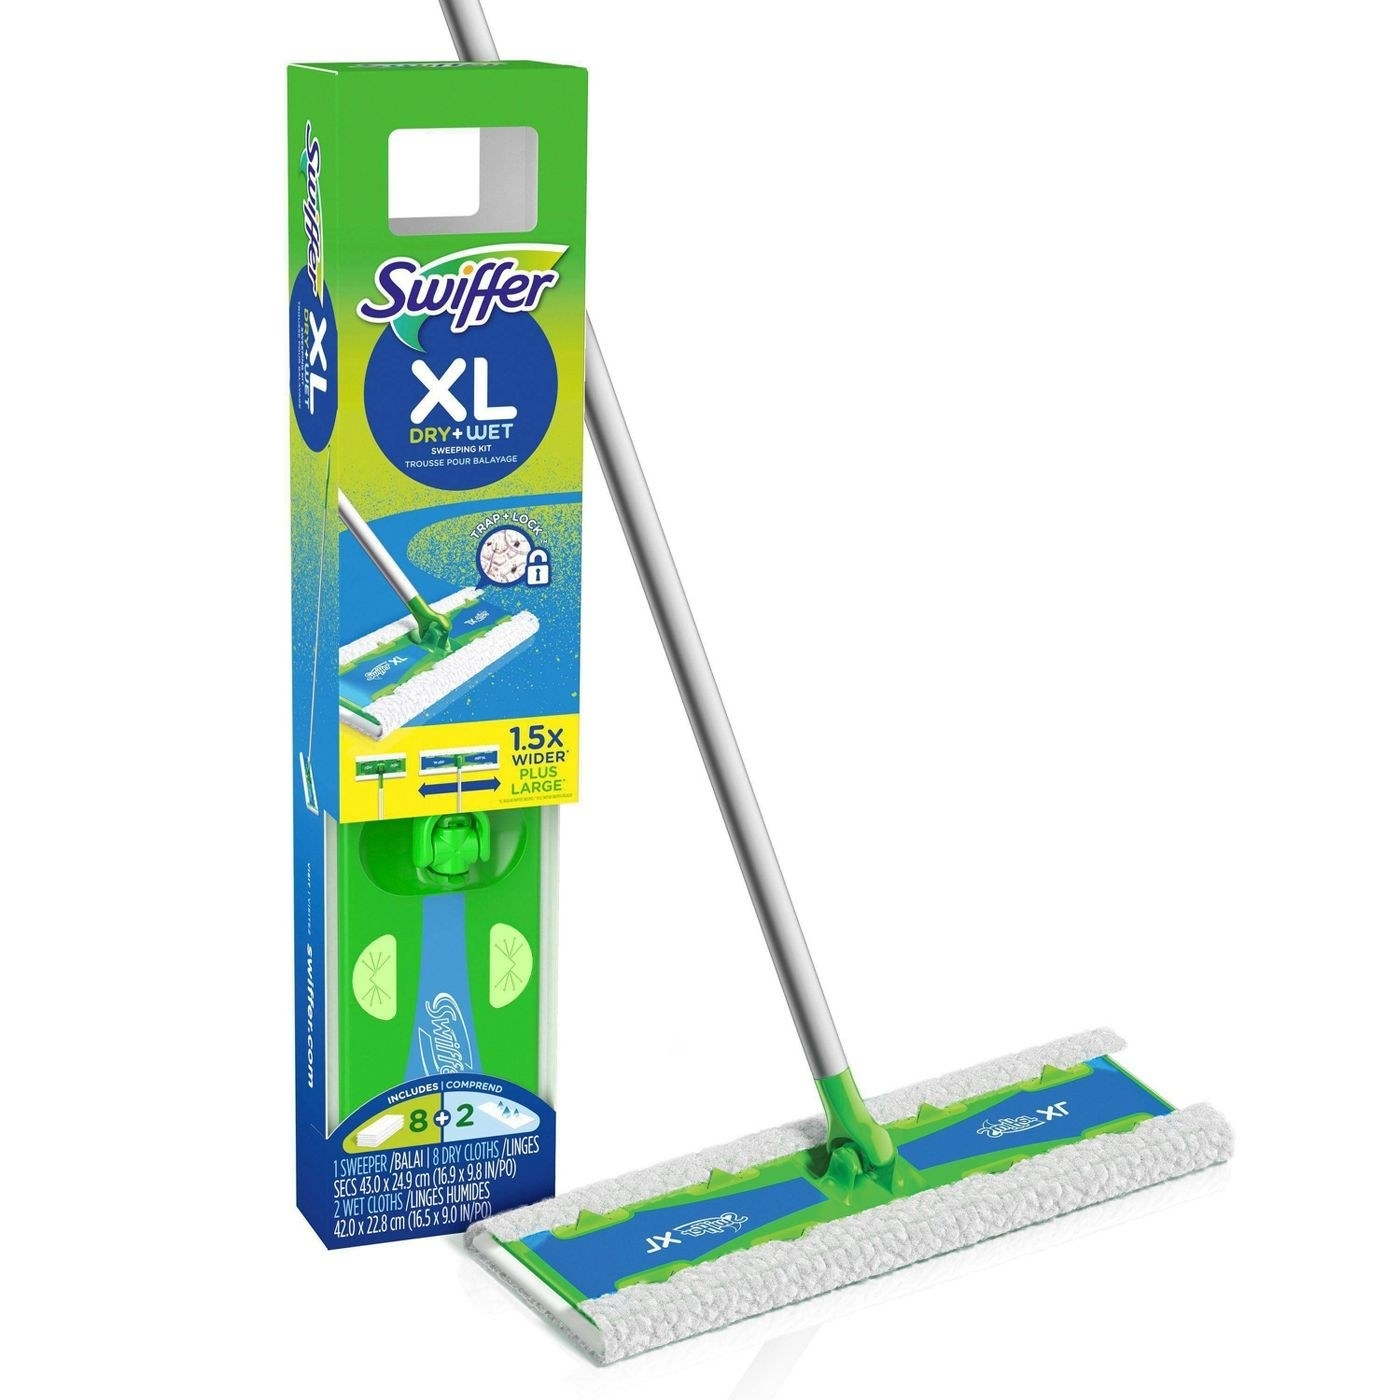 The Swiffer Sweeper kit